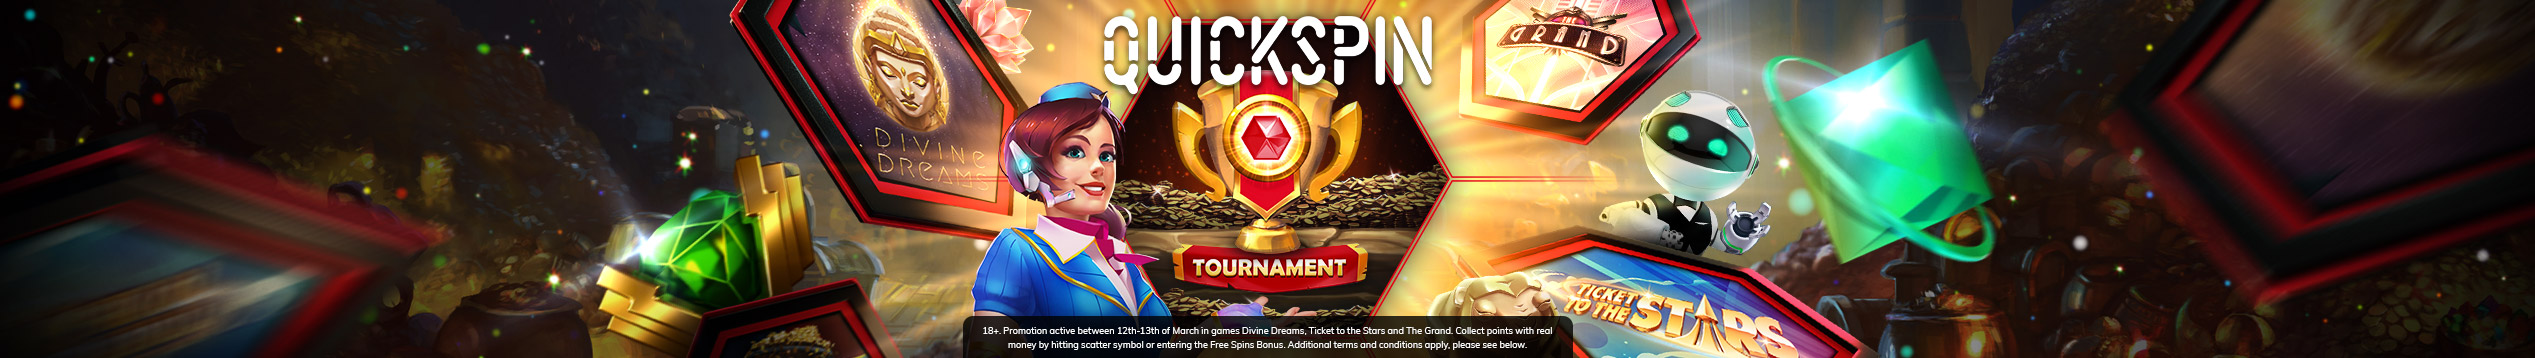 Quickspin Tournament